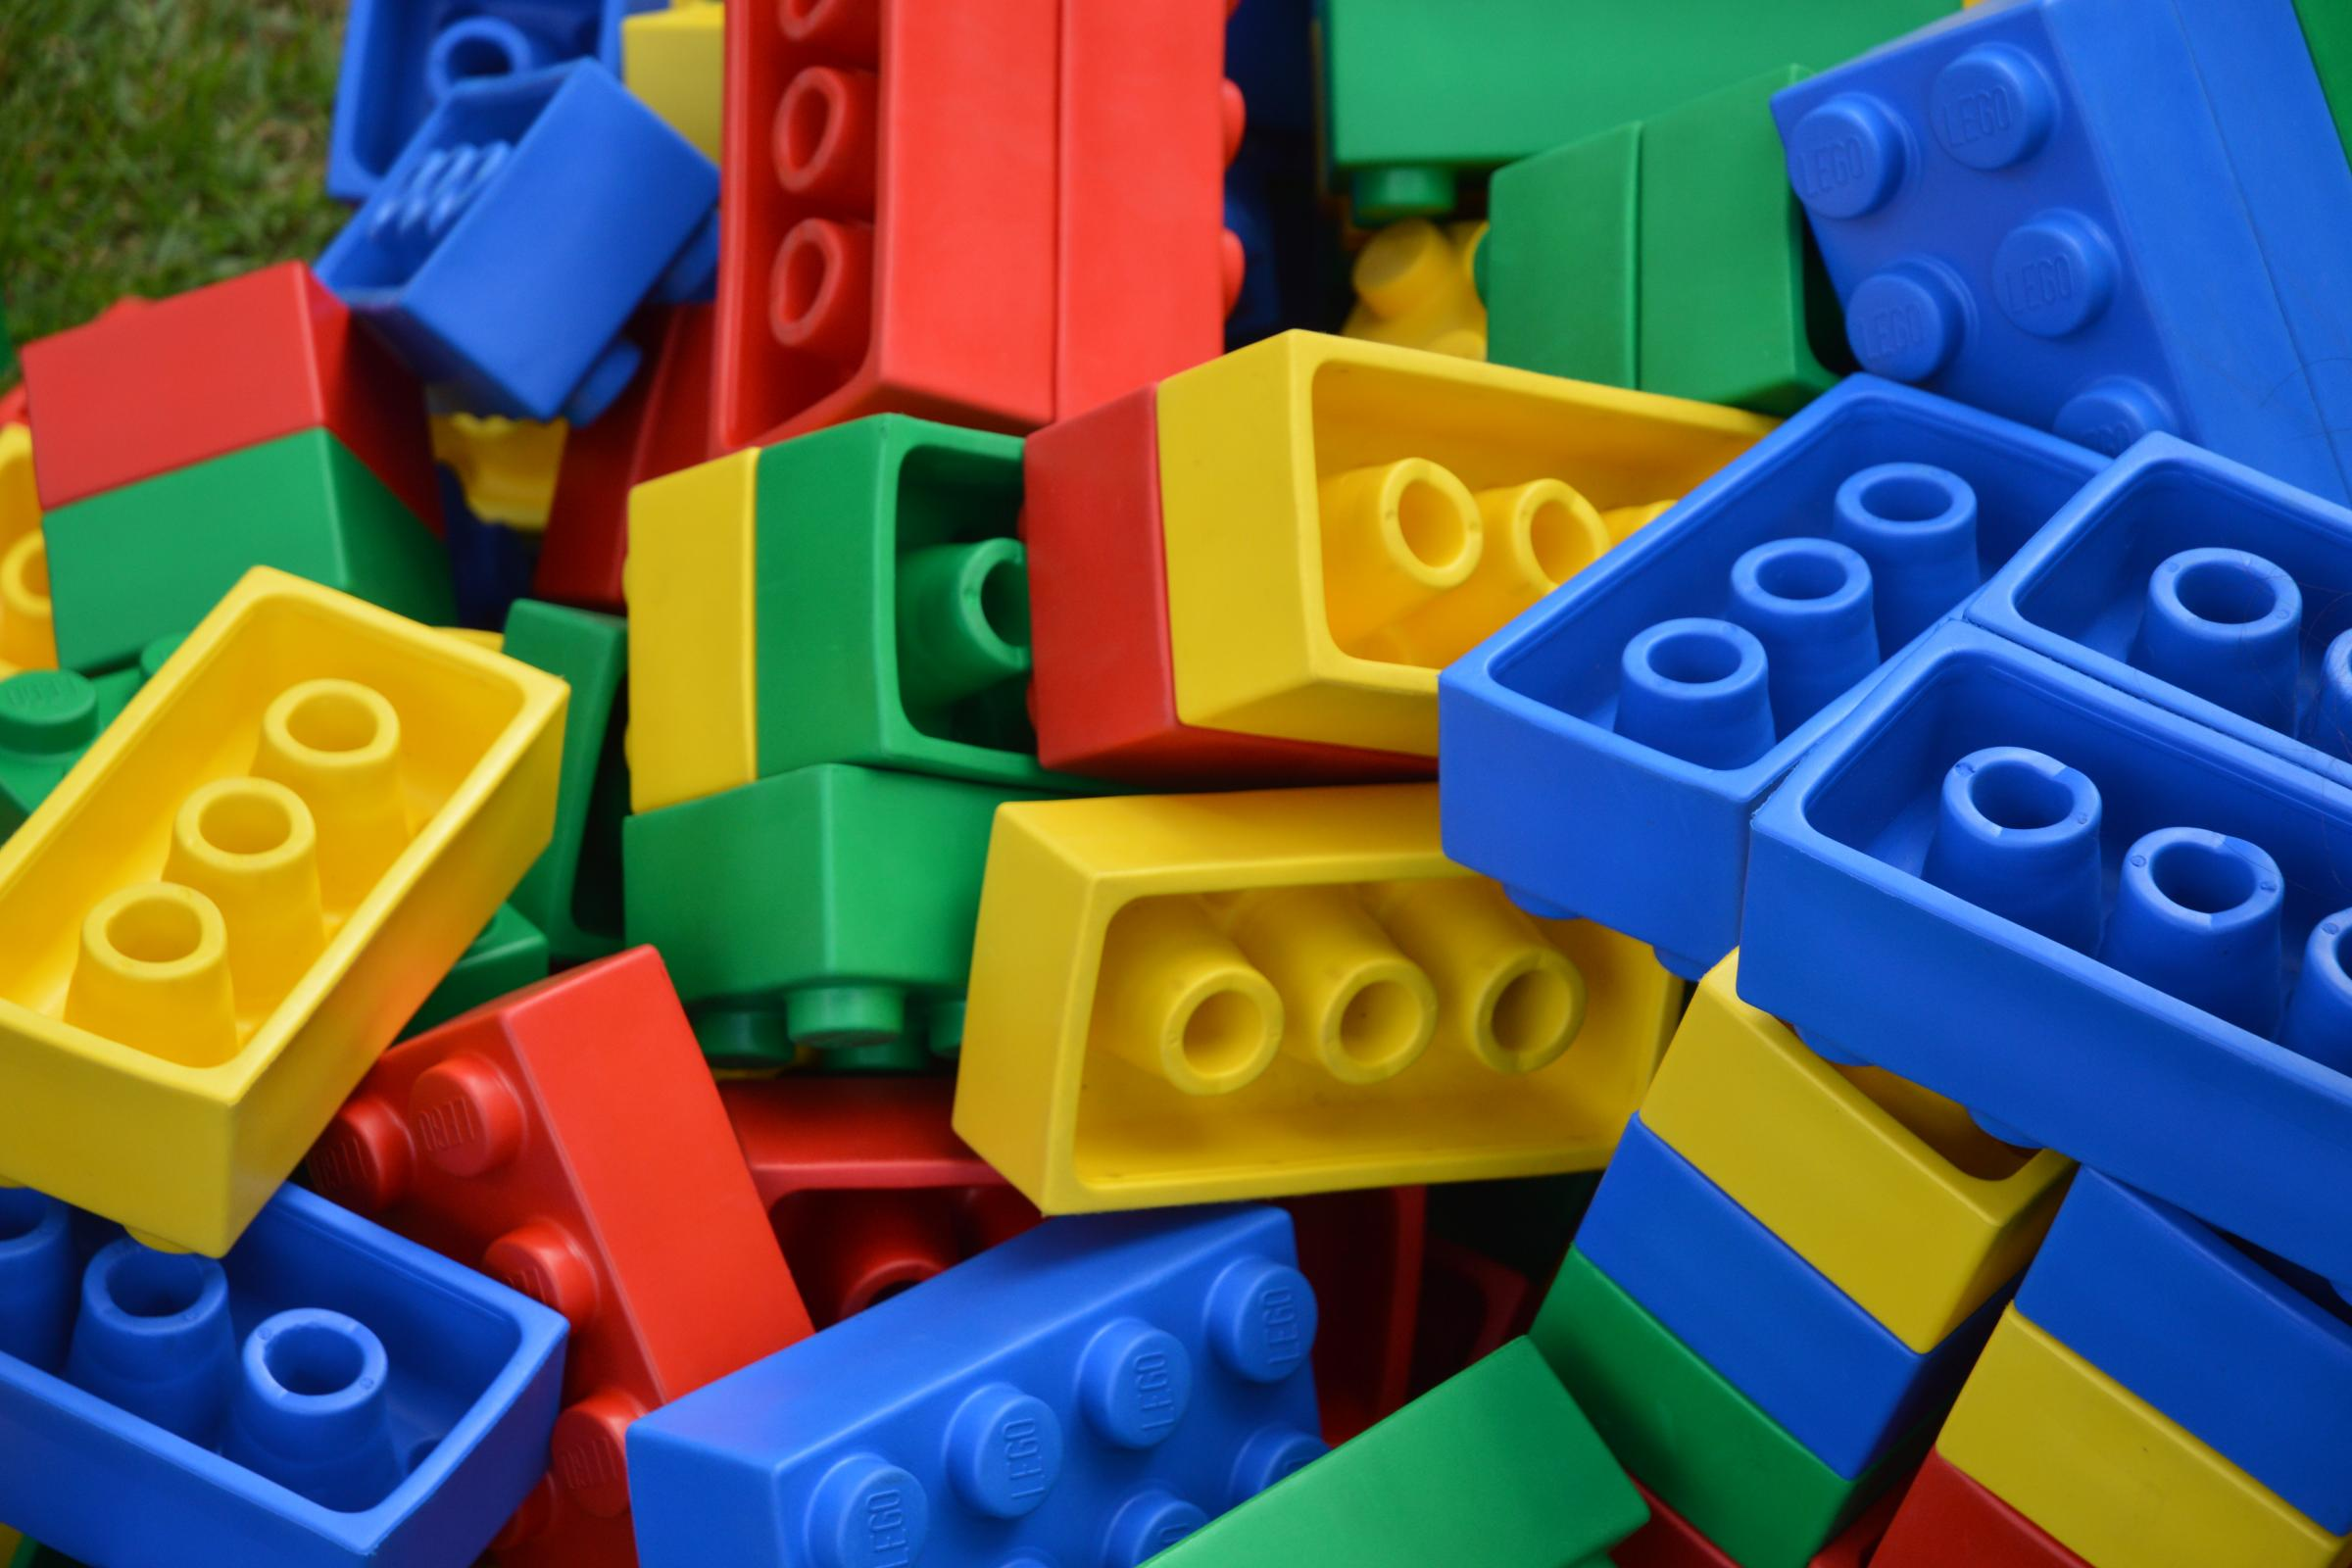 Lots of differently coloured lego blocks